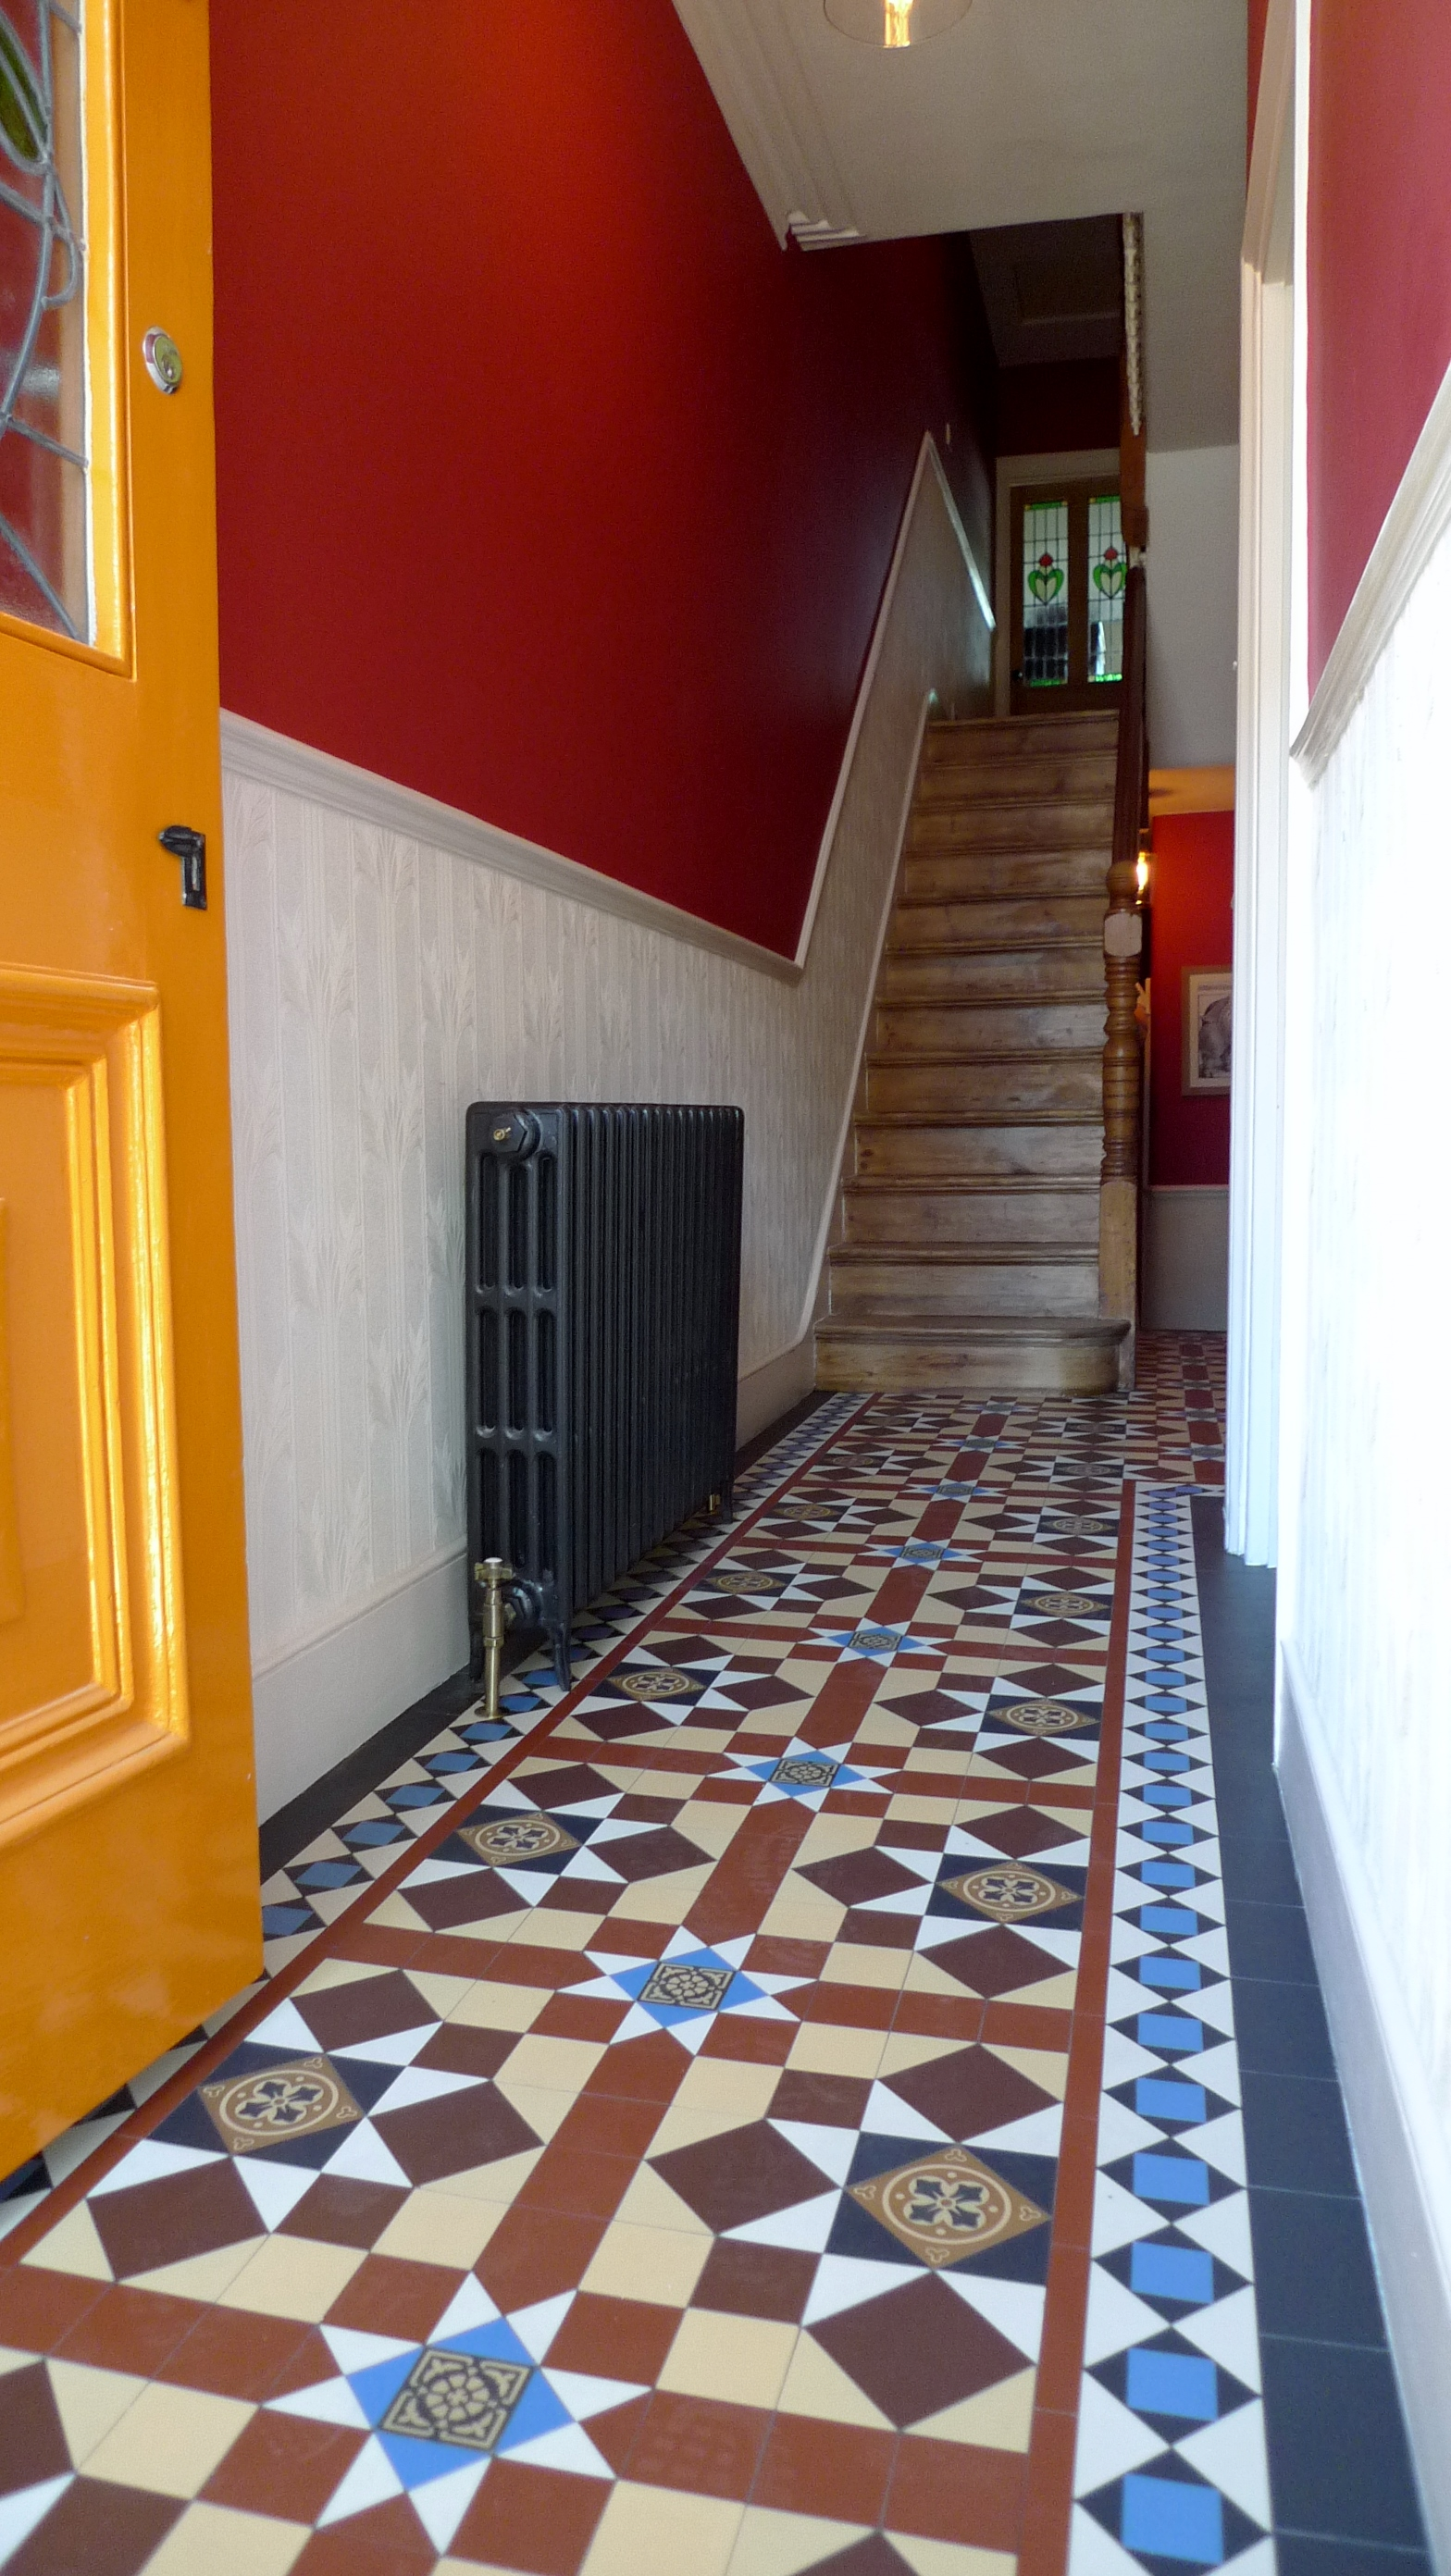 victorian mosaic tile hallway hall way brockley peckham dulwich clapham battersea london